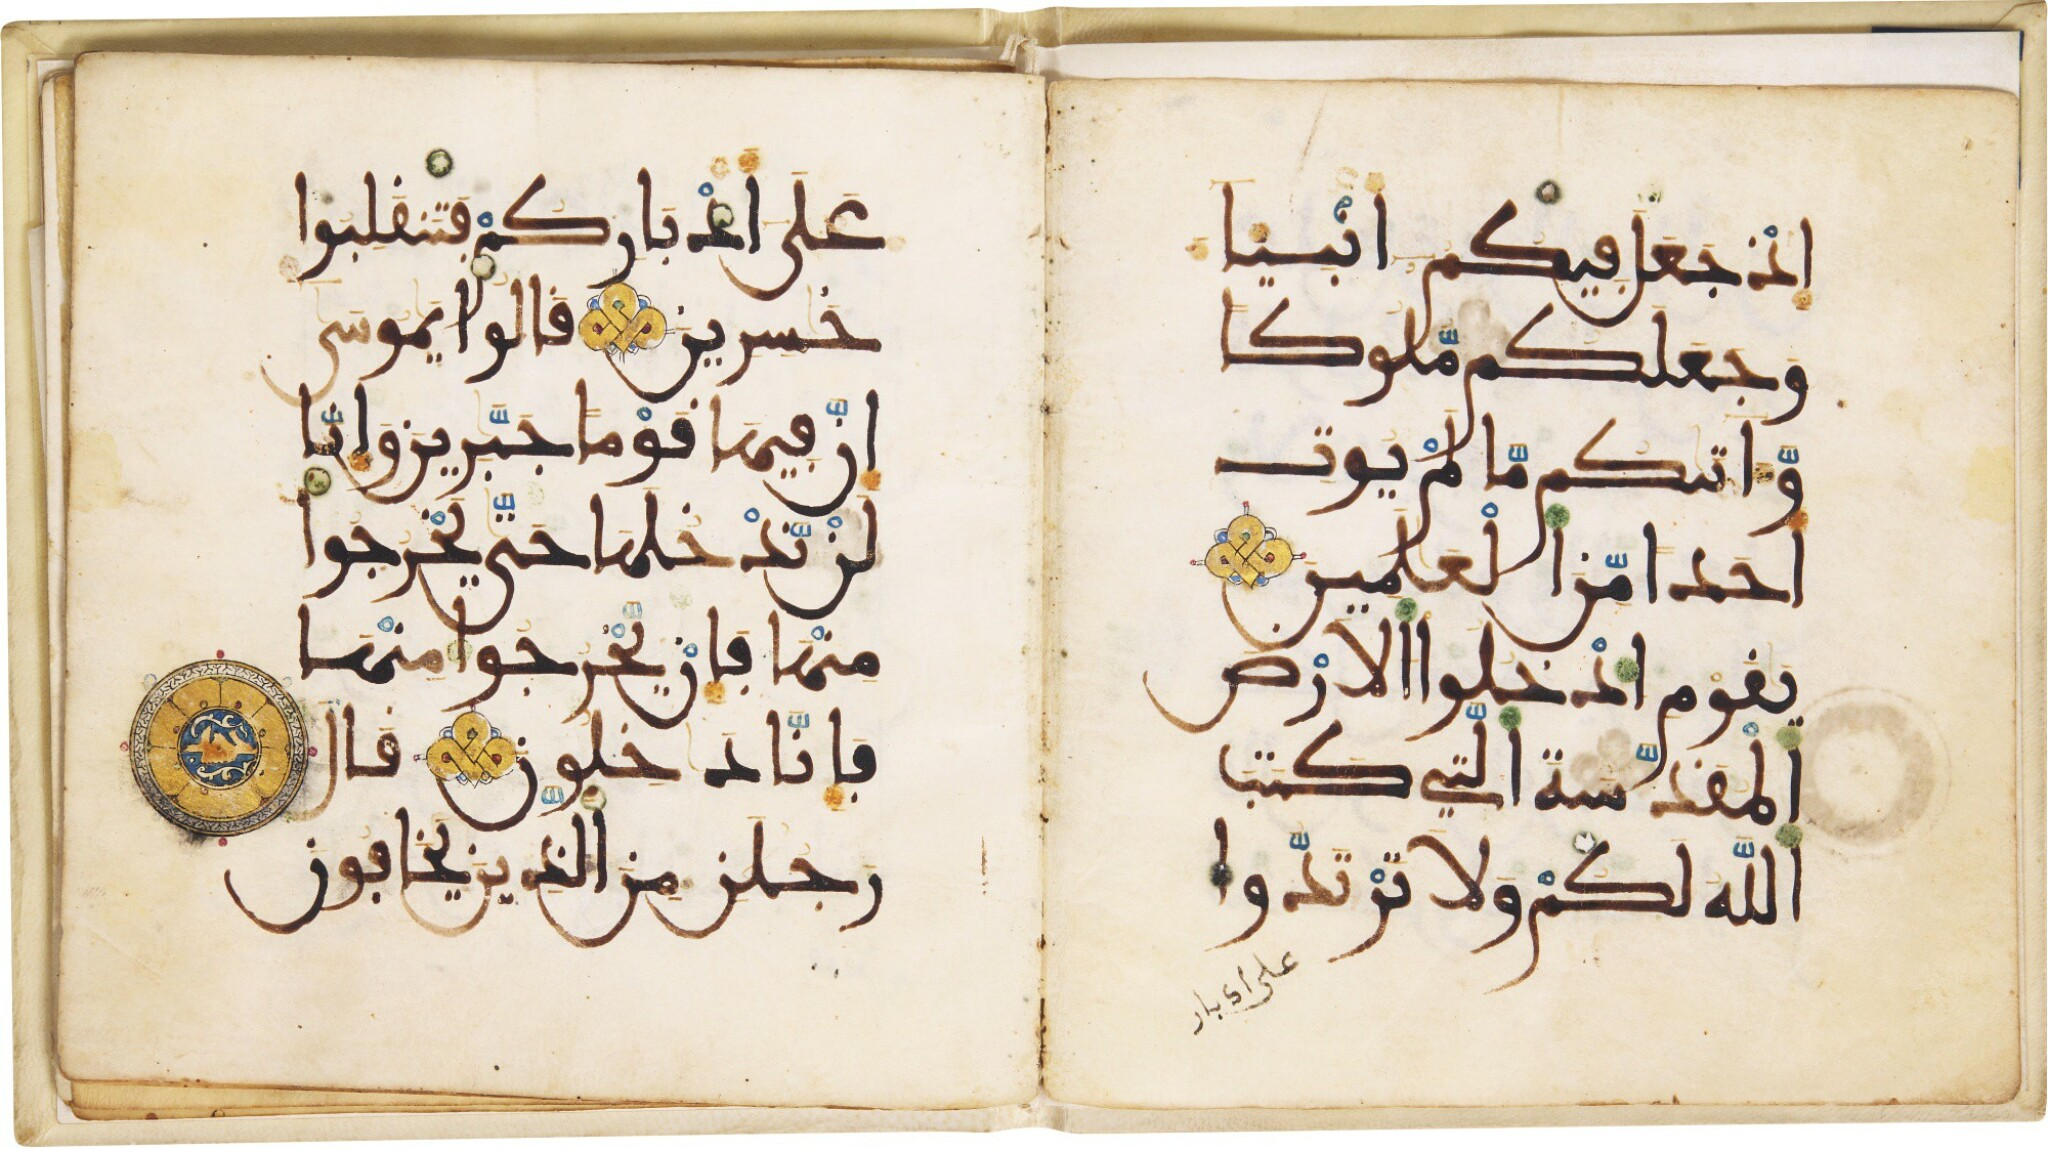 View full screen - View 1 of Lot 2. AN ILLUMINATED QUR'AN SECTION IN MAGHRIBI SCRIPT, NORTH AFRICA OR SPAIN, 12TH CENTURY AD.